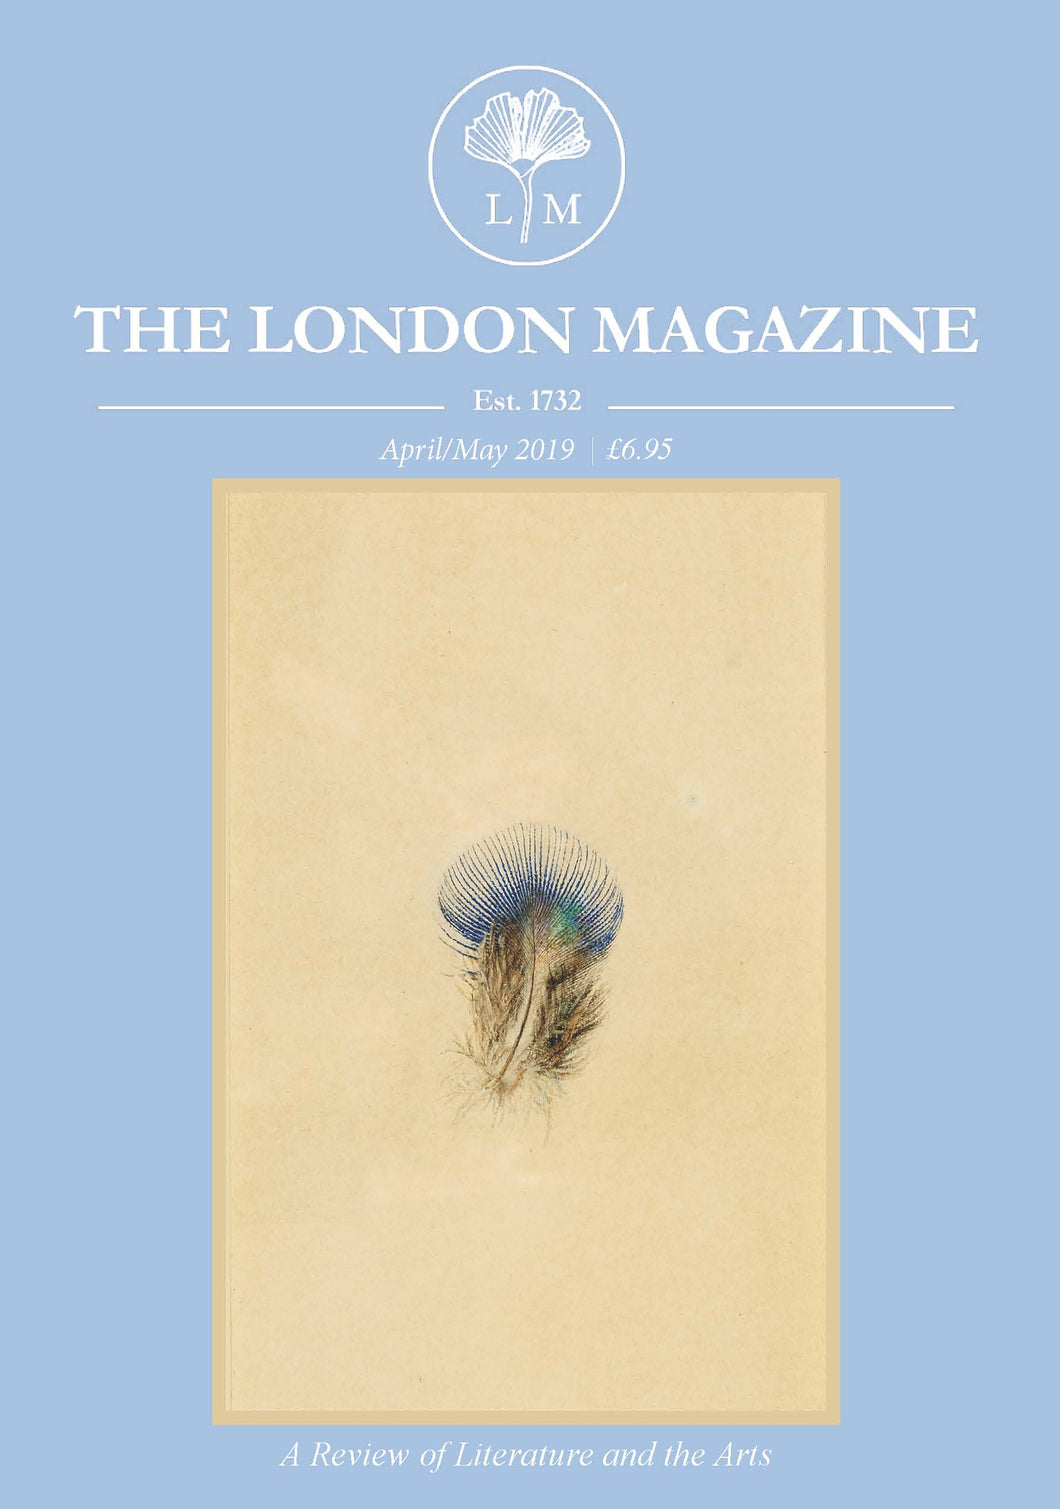 The London Magazine - April/May 2019